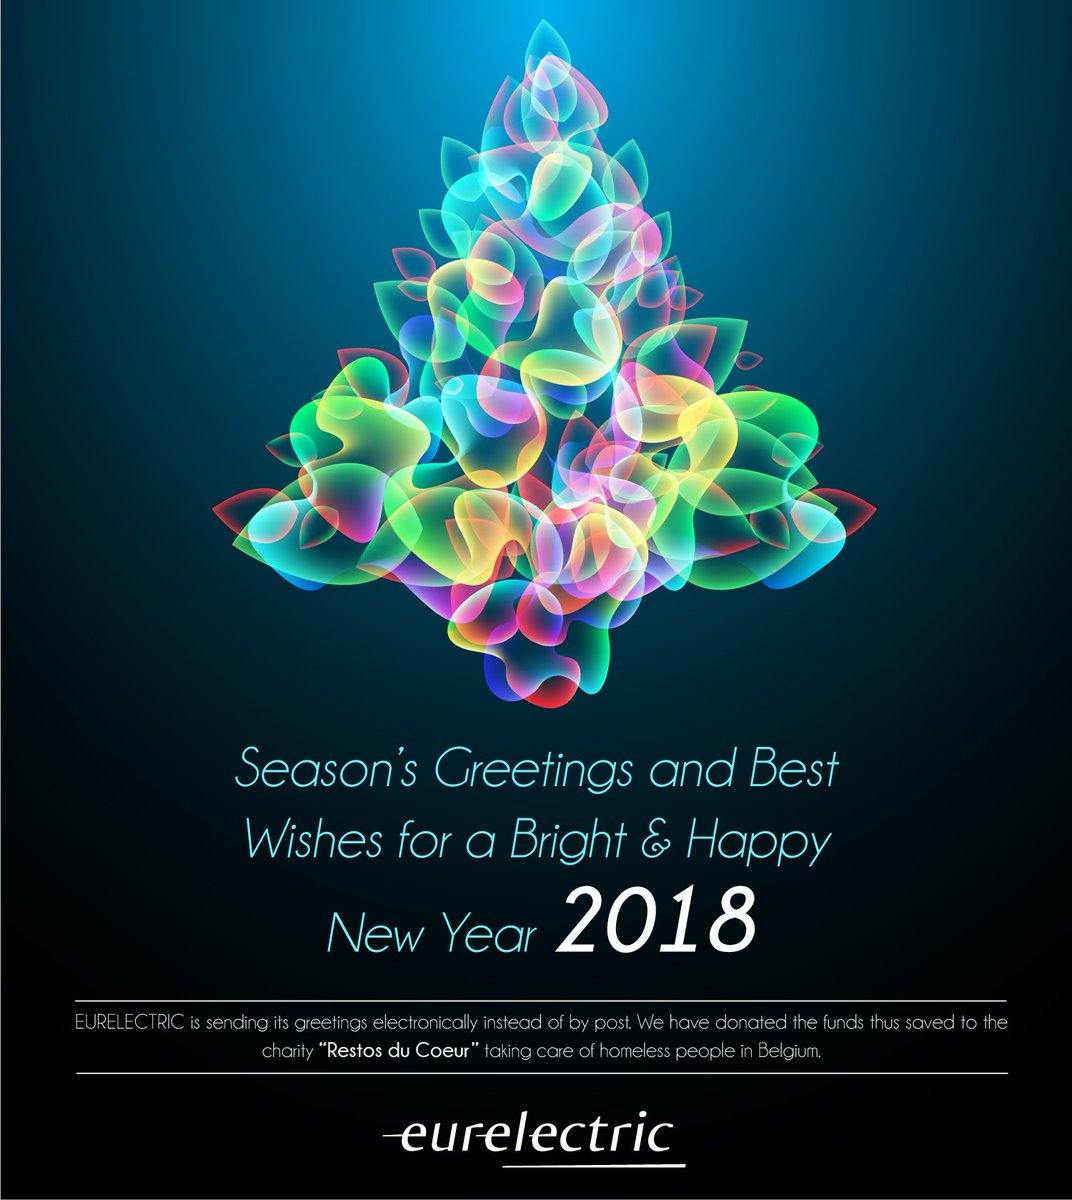 Eurelectric On Twitter Seasons Greetings From All Of Us